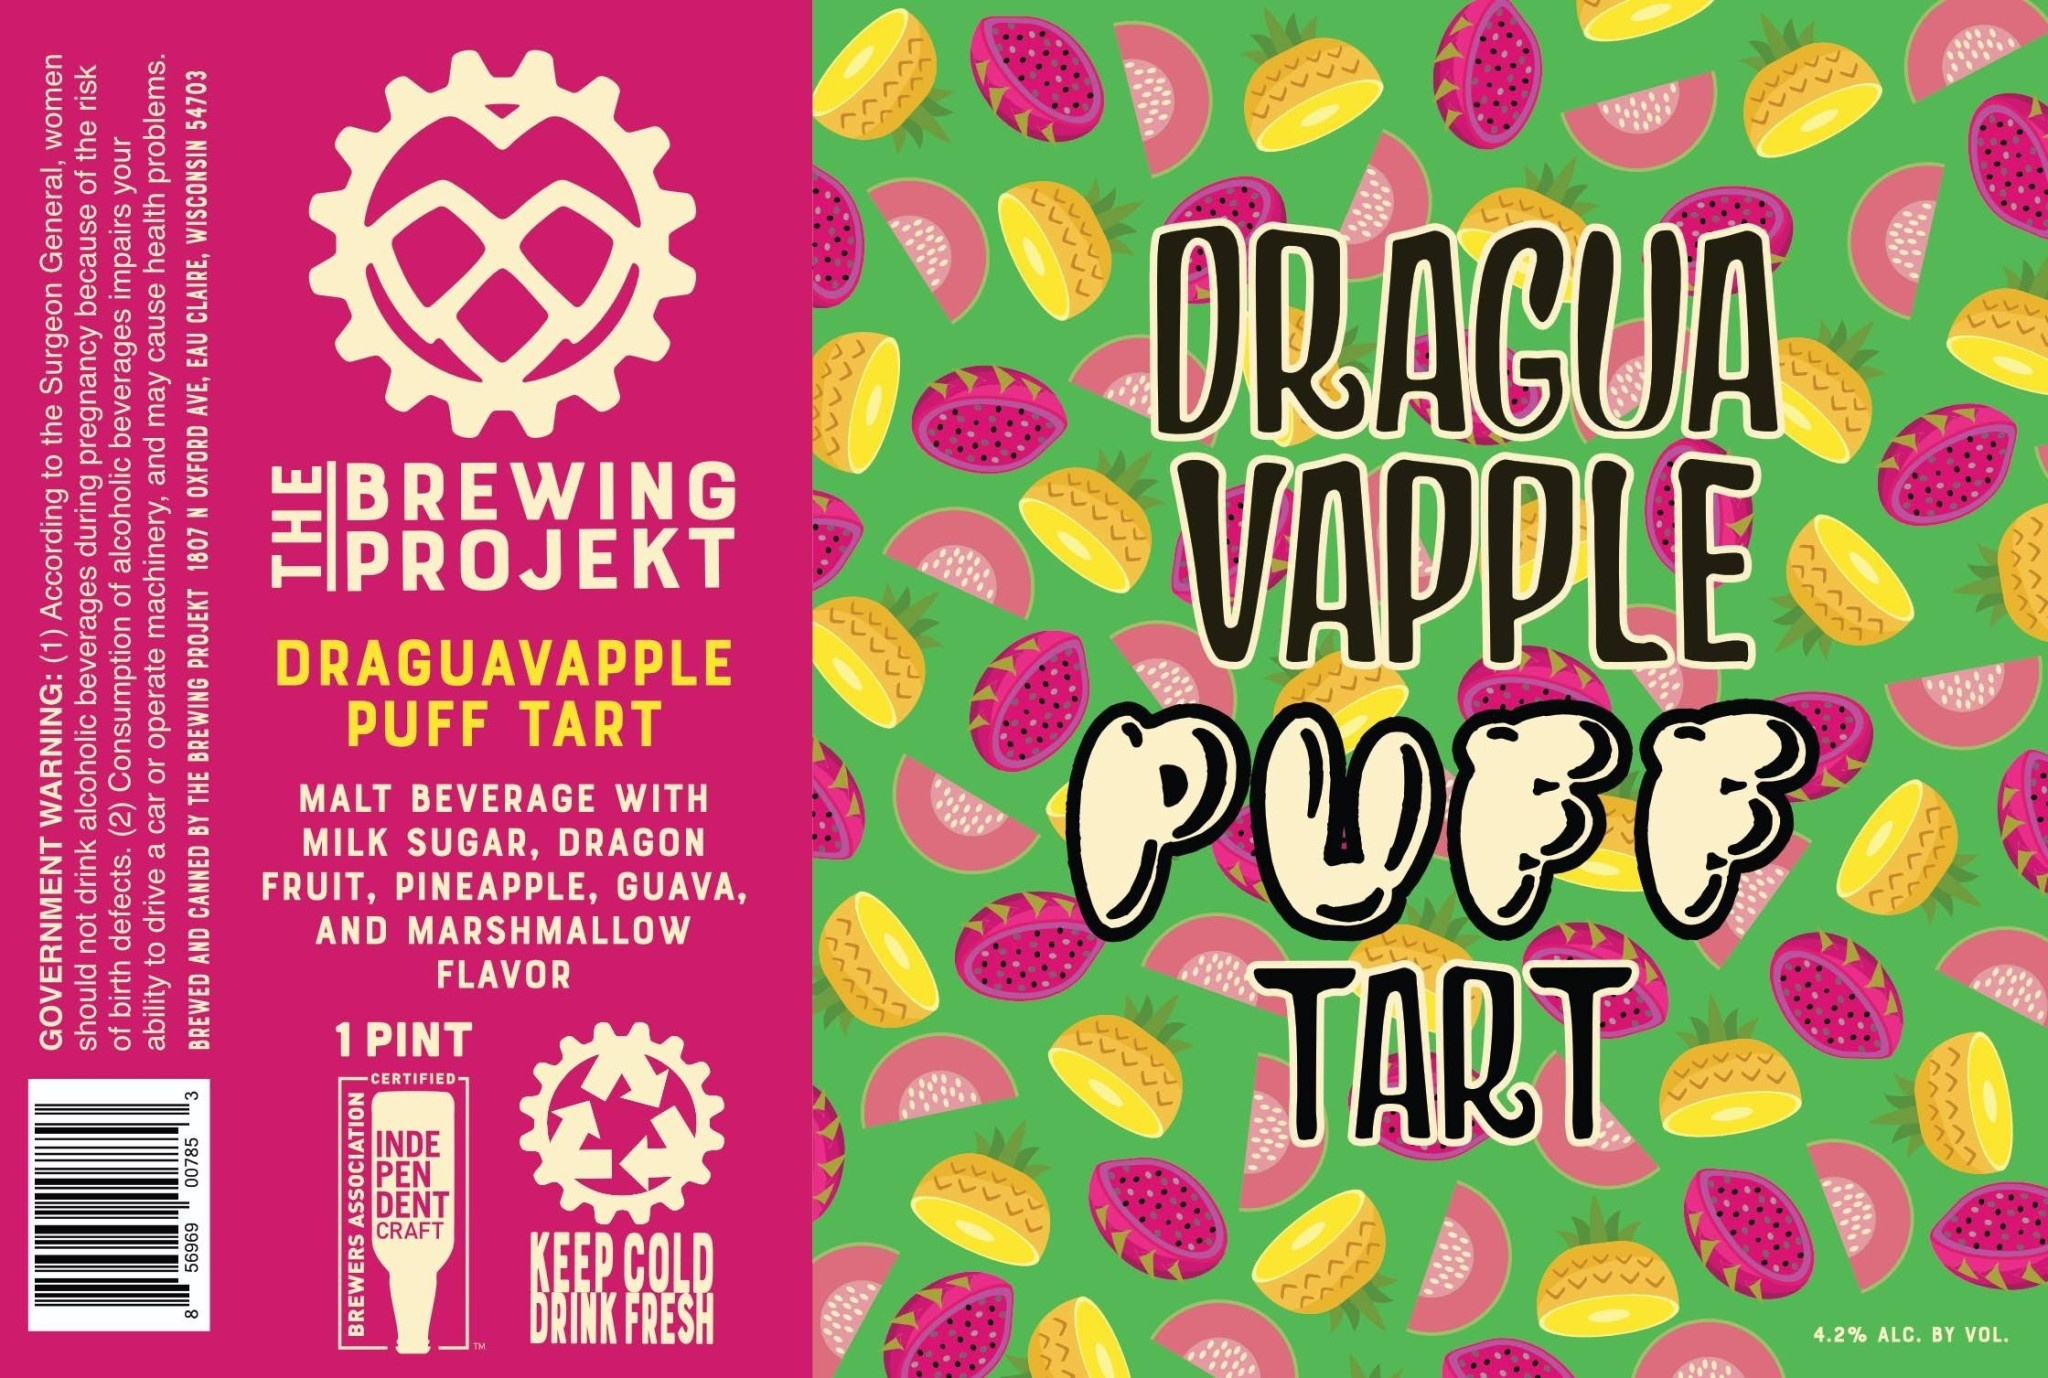 The Brewing Projekt THE BREWING PROJEKT DRAGUAVAPPLE PUFF TART KETTLE SOUR 4 PK CANS